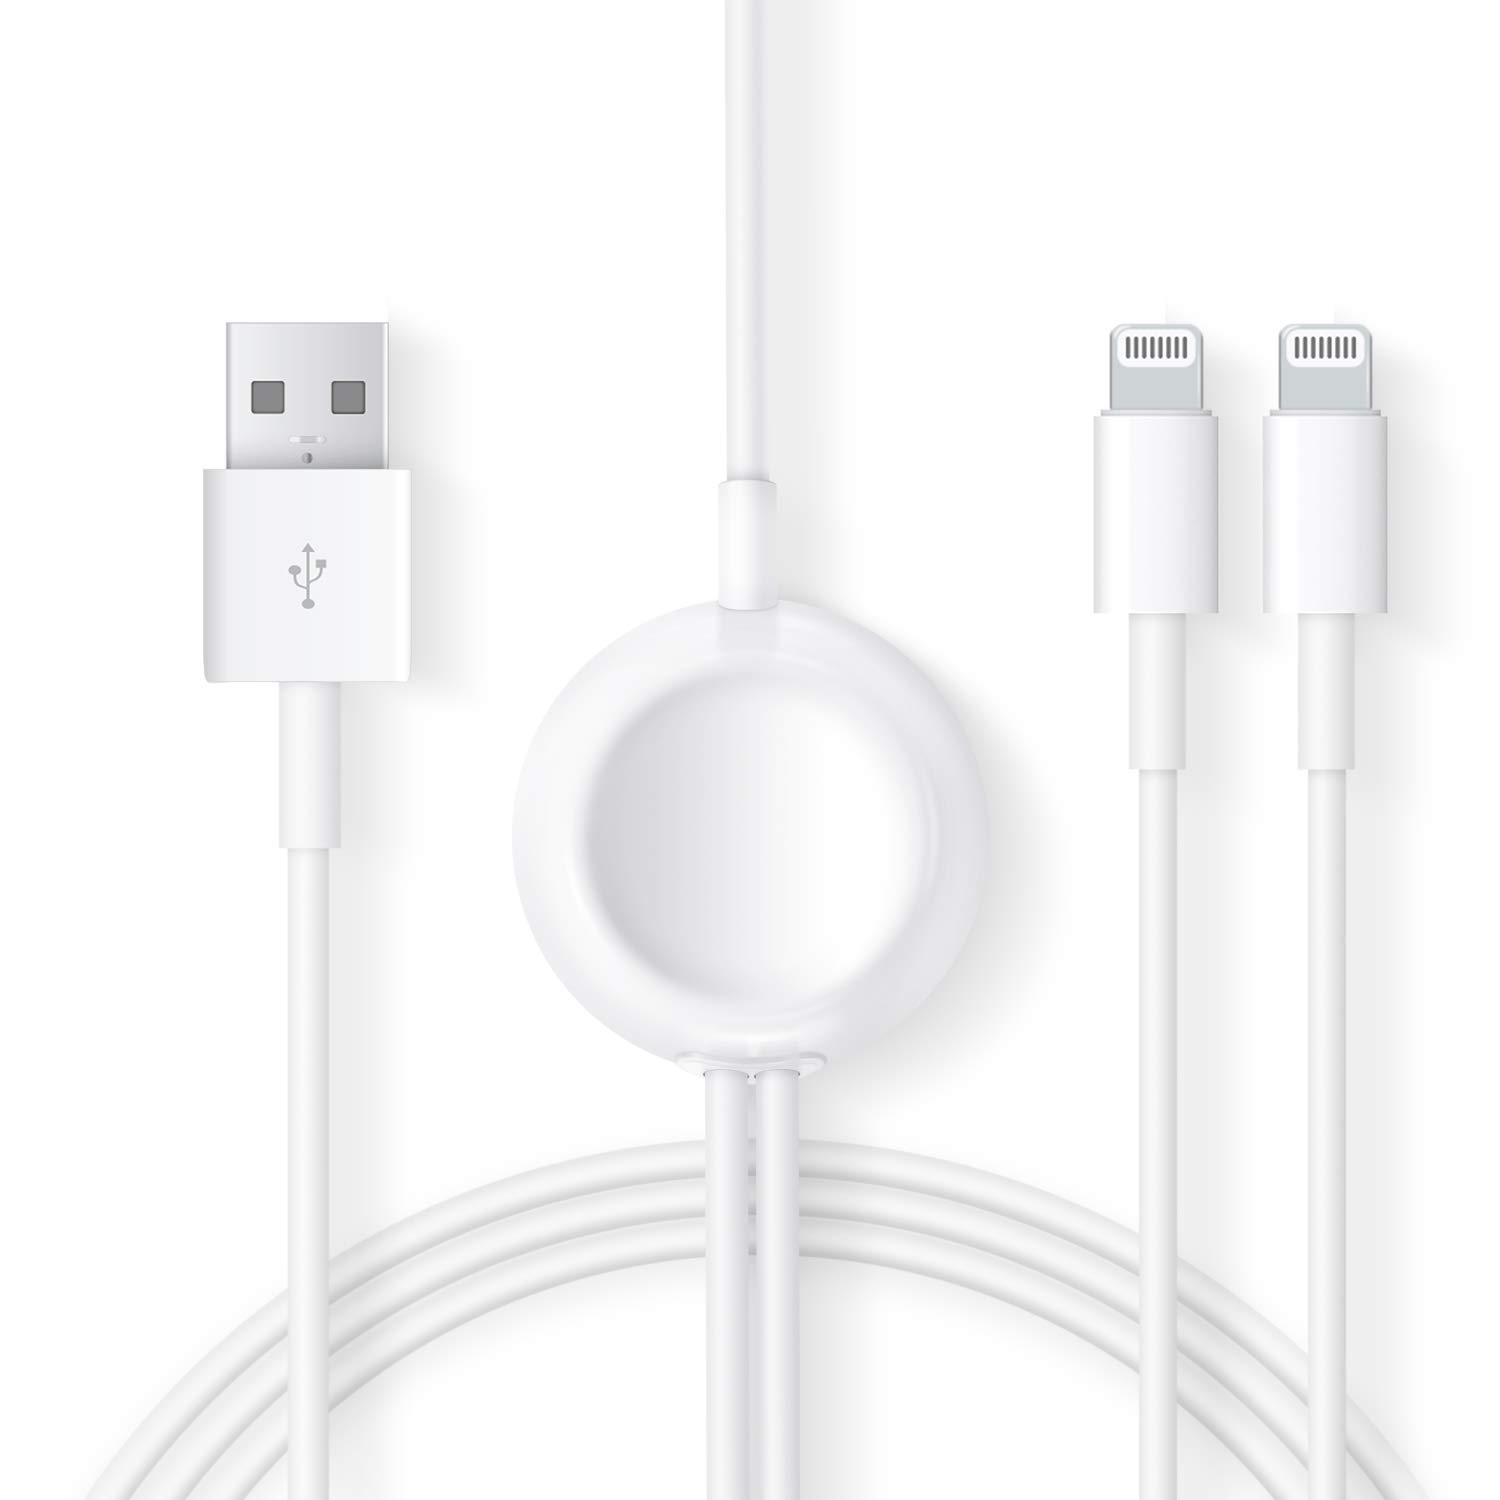 Compatible with Apple Watch iWatch Charger , 3 in 1 Wireless Fast Charger with 3.9ft/1.2m Charging Cable for Apple Watch Series 4/3/2/1,iPhoneXR/XS/XS Max/X/8/8Plus/7/7Plus/6/6Plus